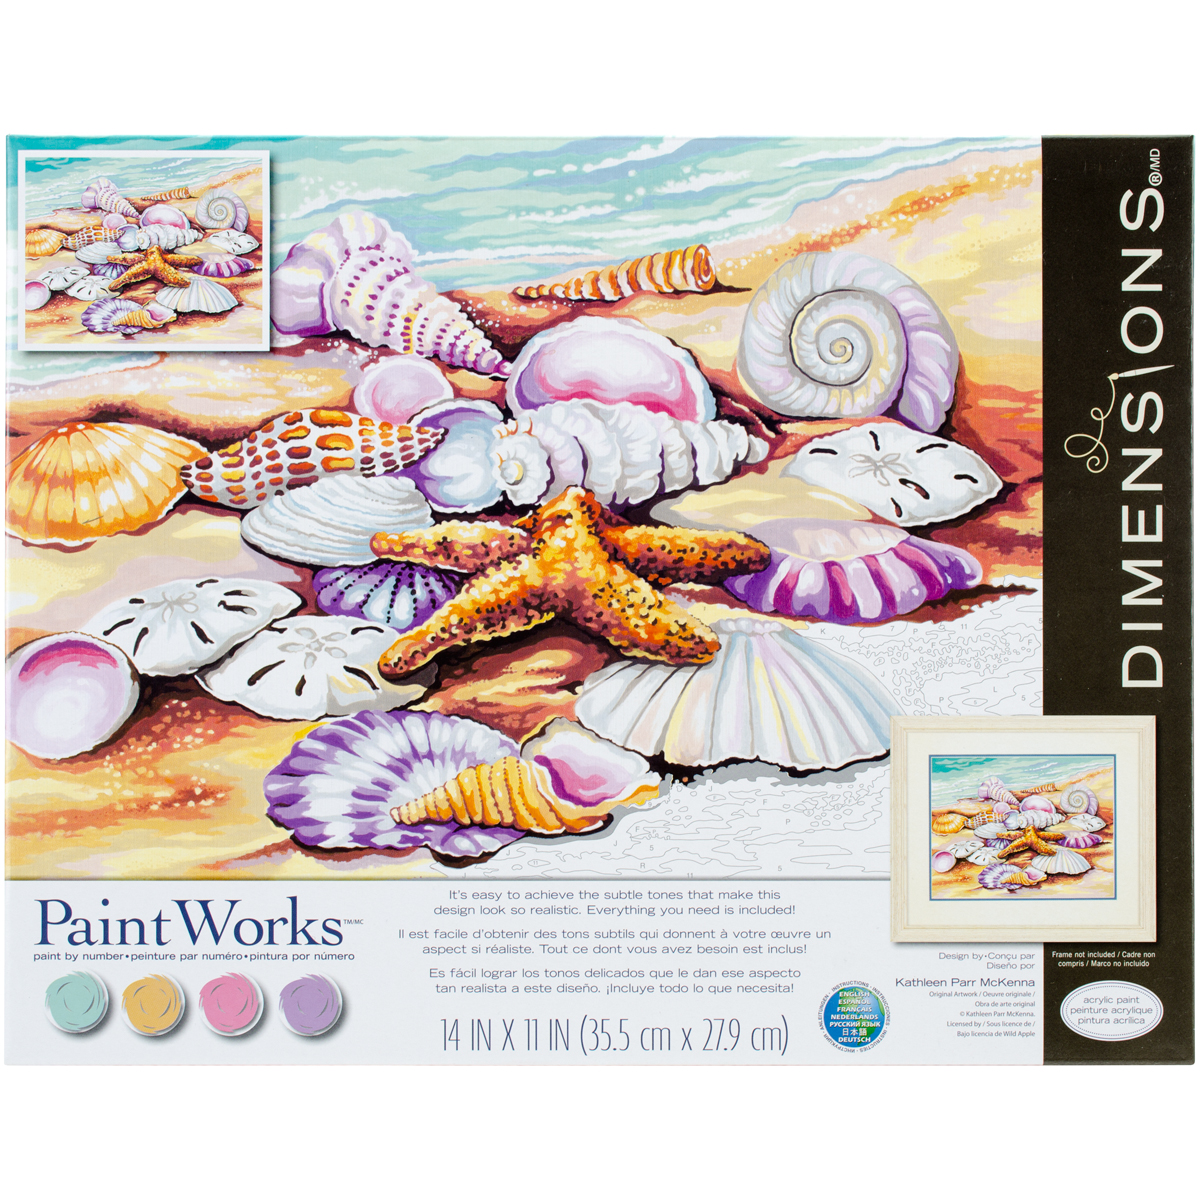 Paint Works Paint By Number Kit 11